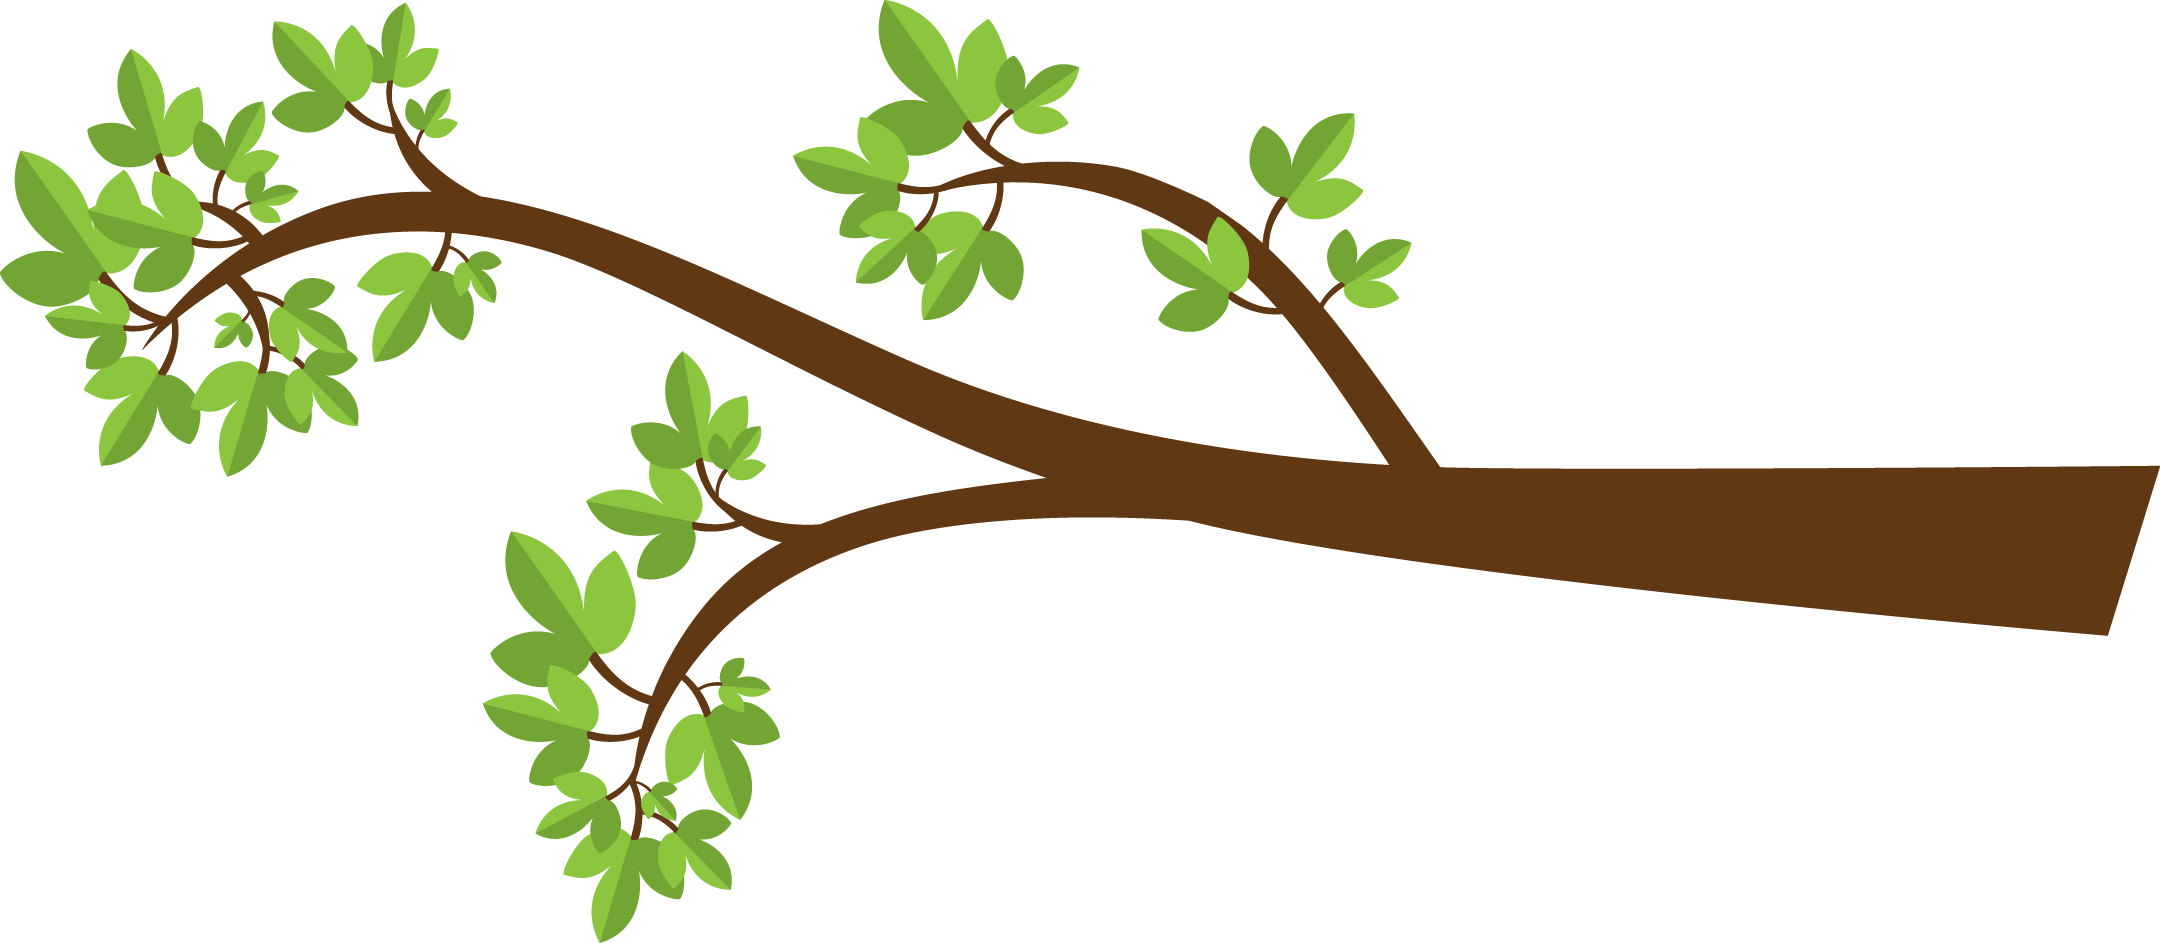 Branch Clipart: Tree Branch With Leaves - Tree Limb PNG